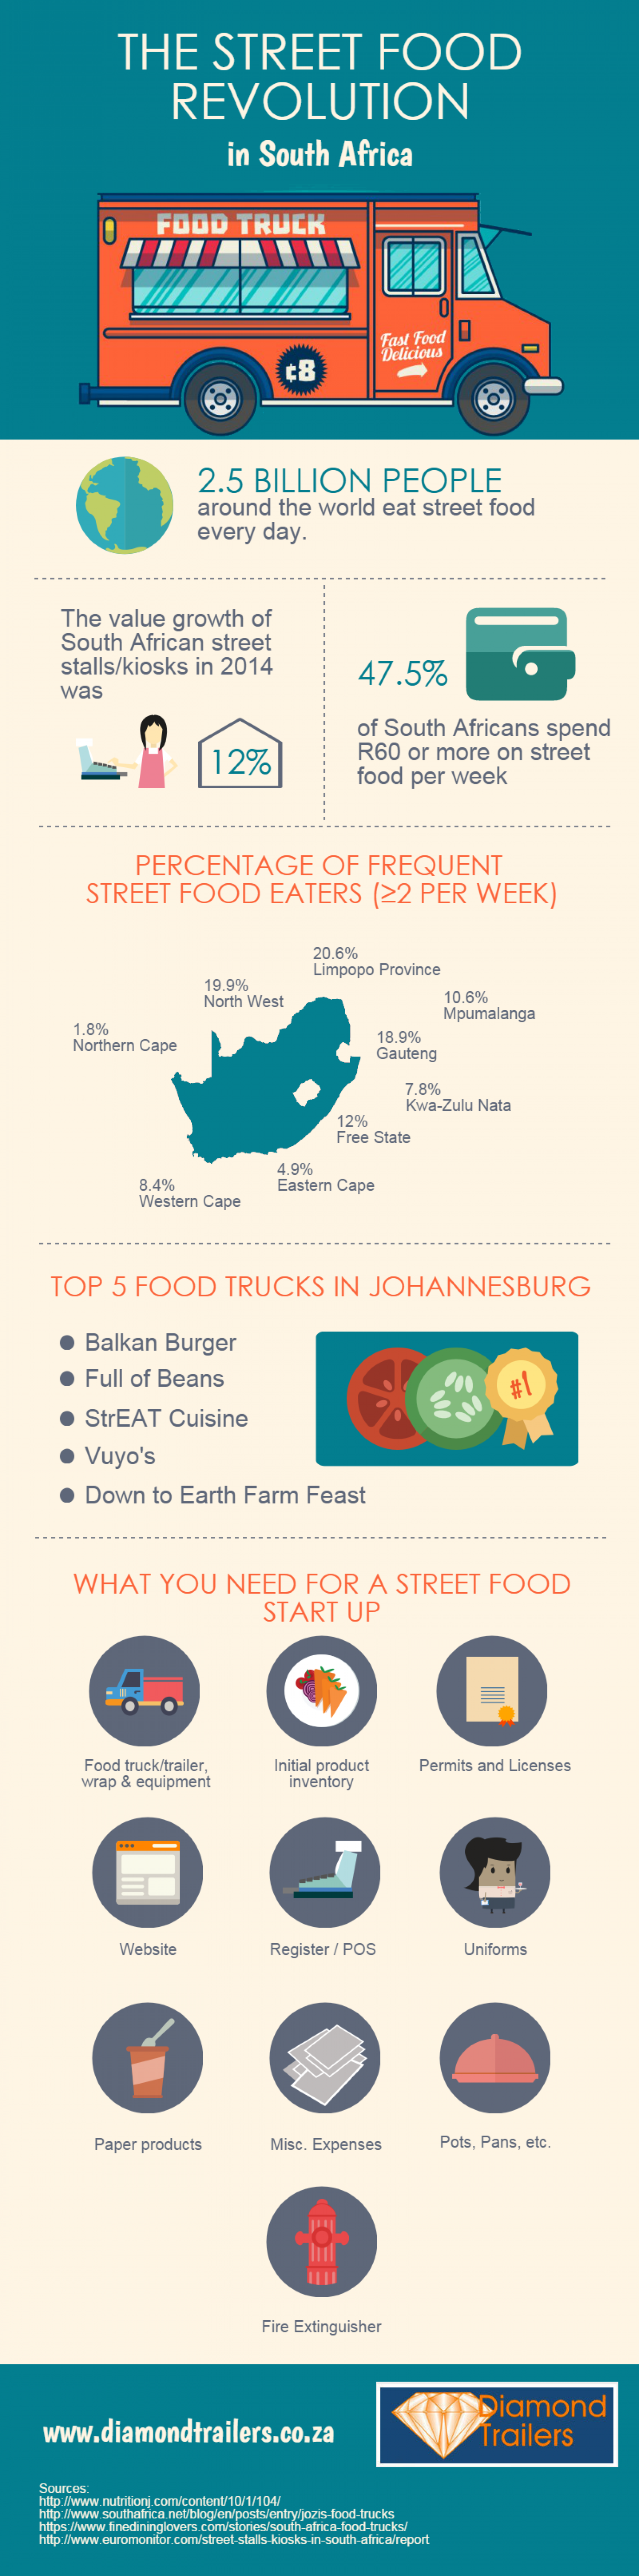 The Street Food Revolution in South Africa Infographic